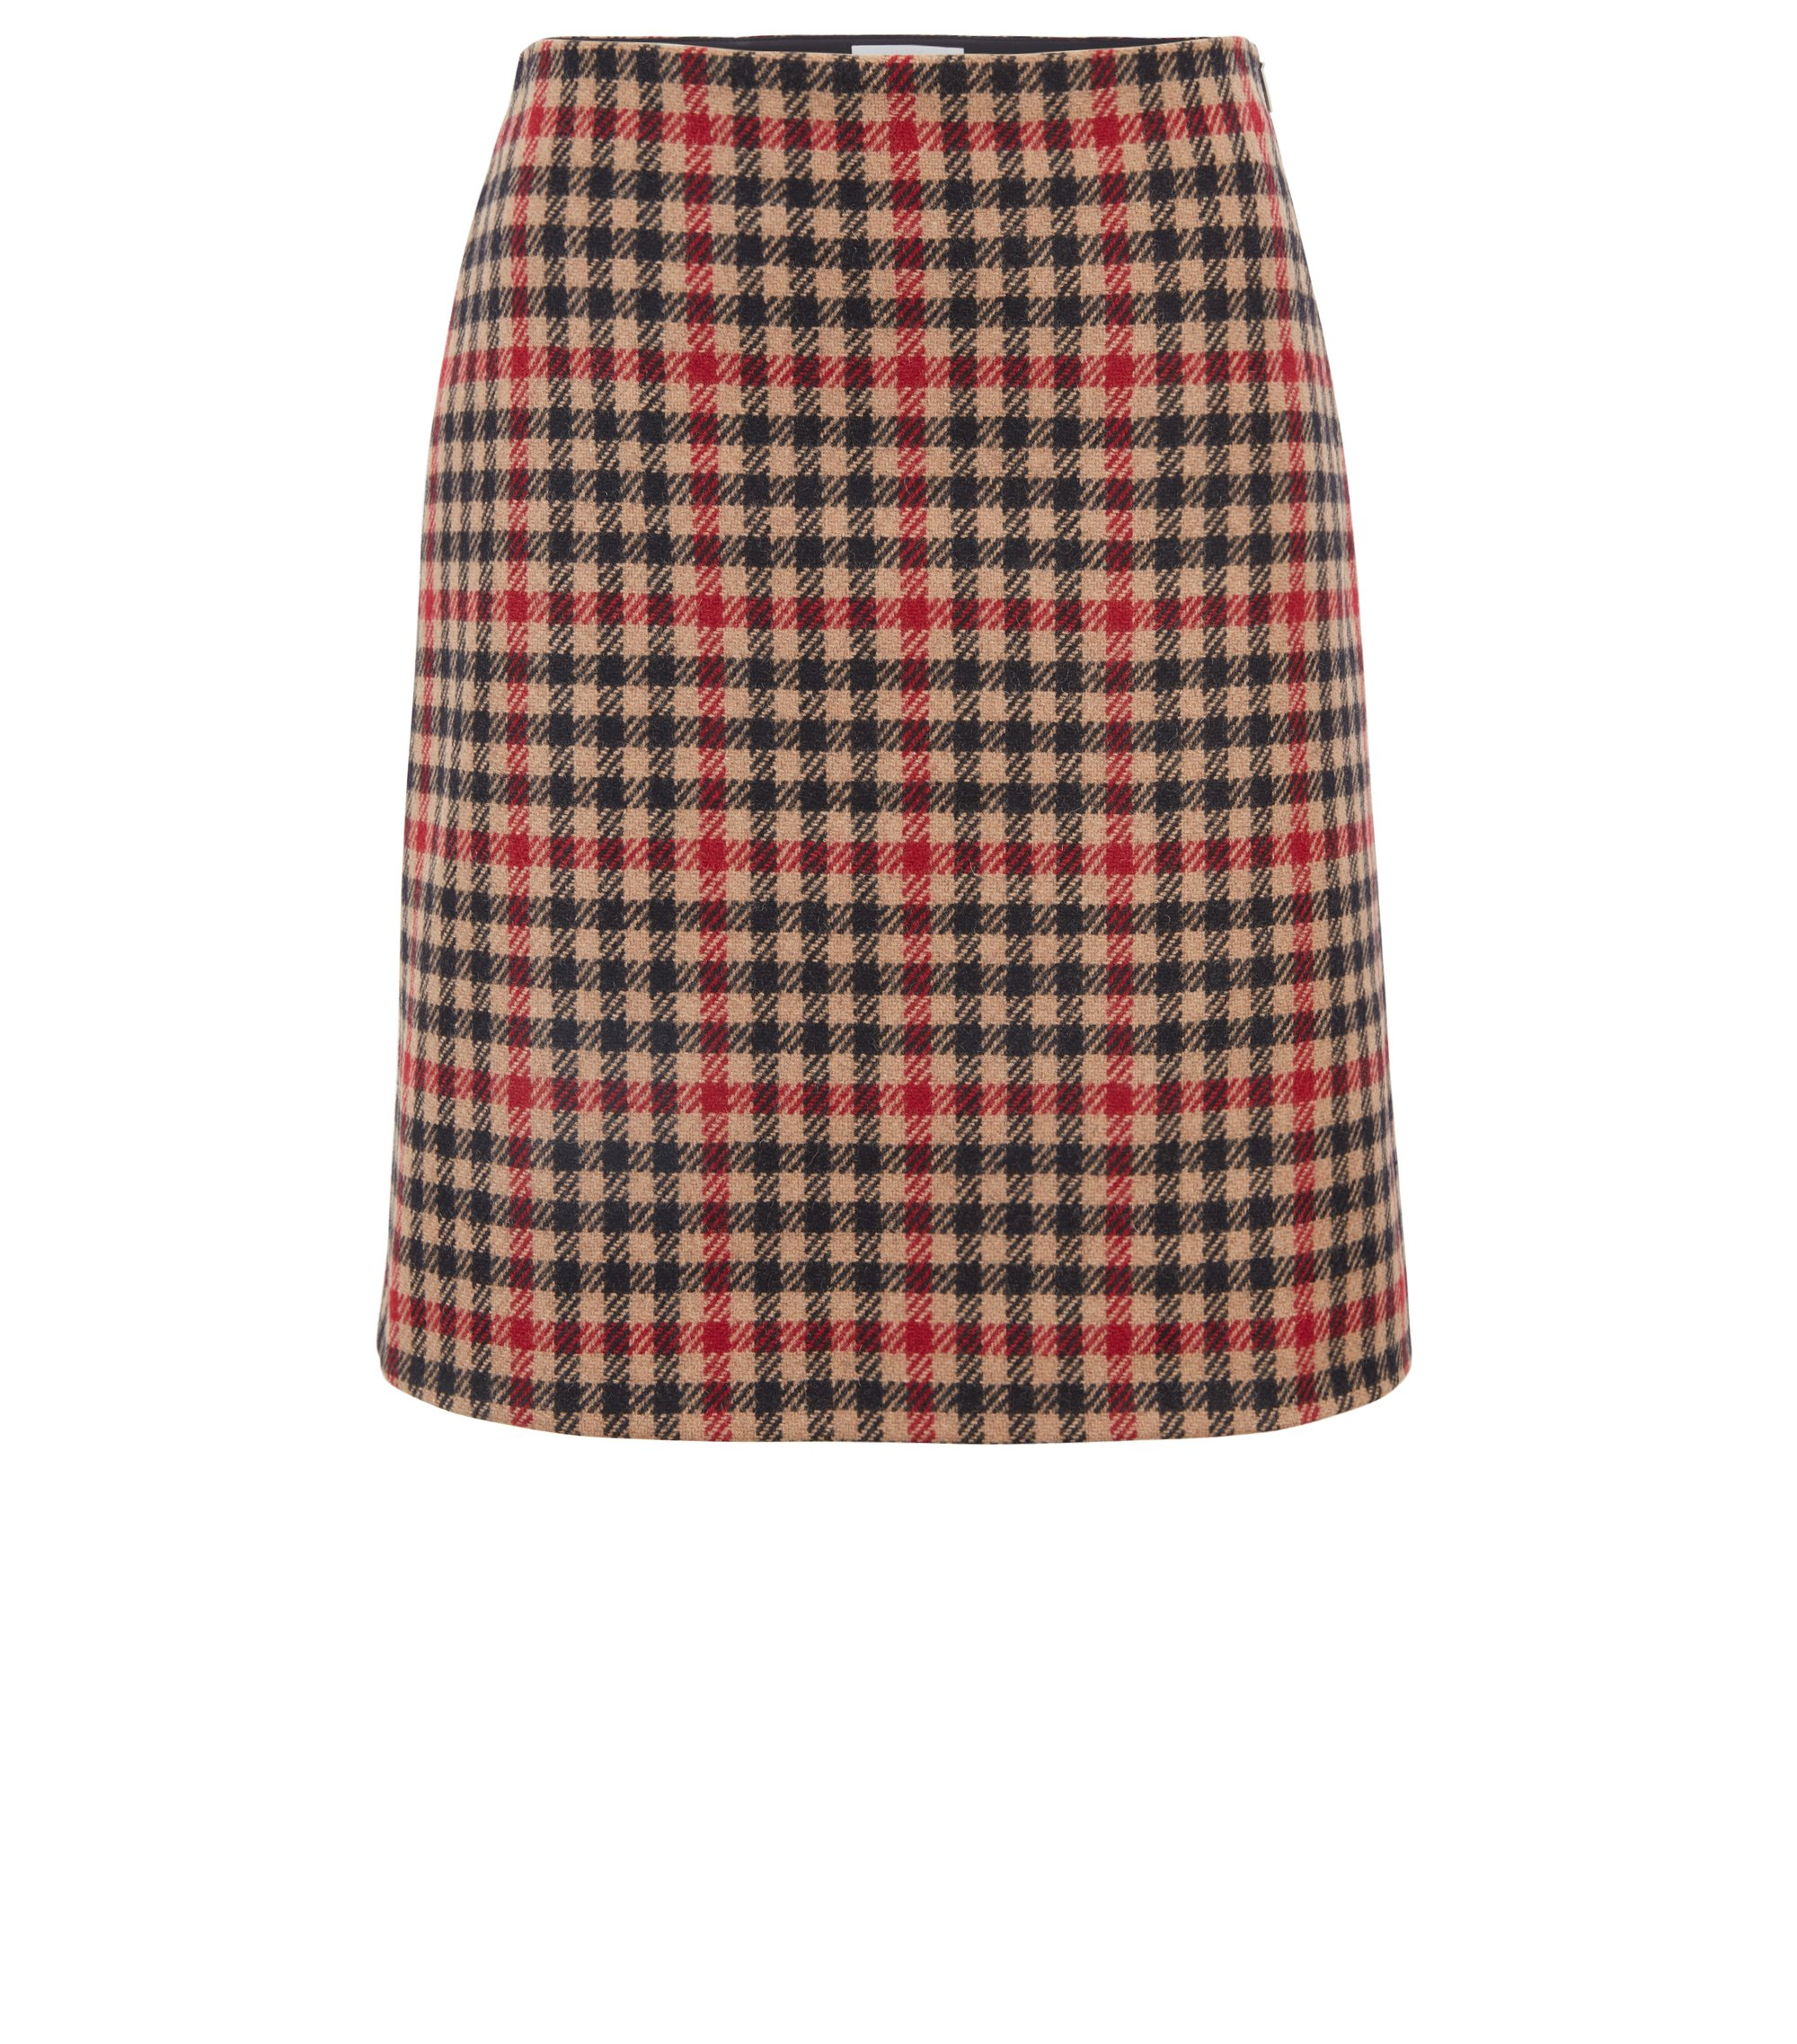 Houndstooth A-line miniskirt in a wool blend, Fantaisie